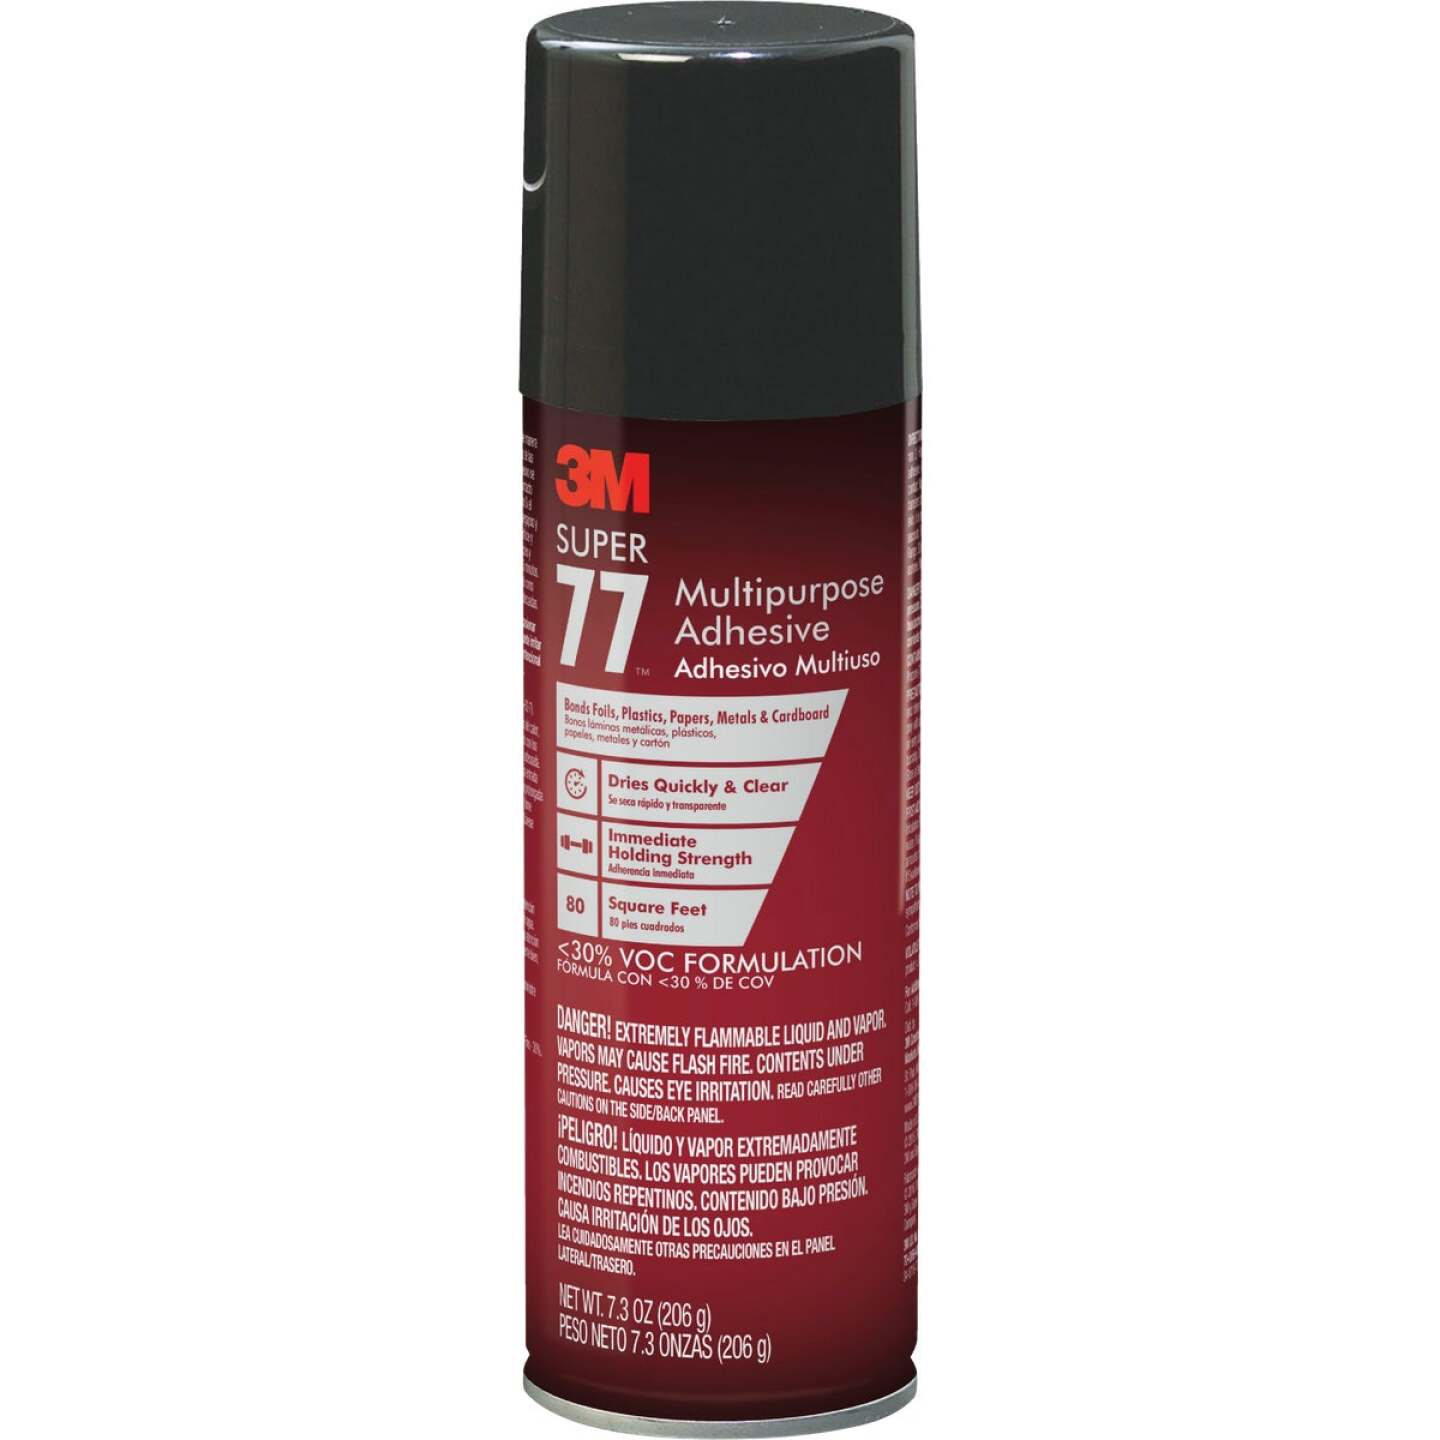 3M Super 77 7.3 Oz. Multipurpose Spray Adhesive (California Compliant) Image 1